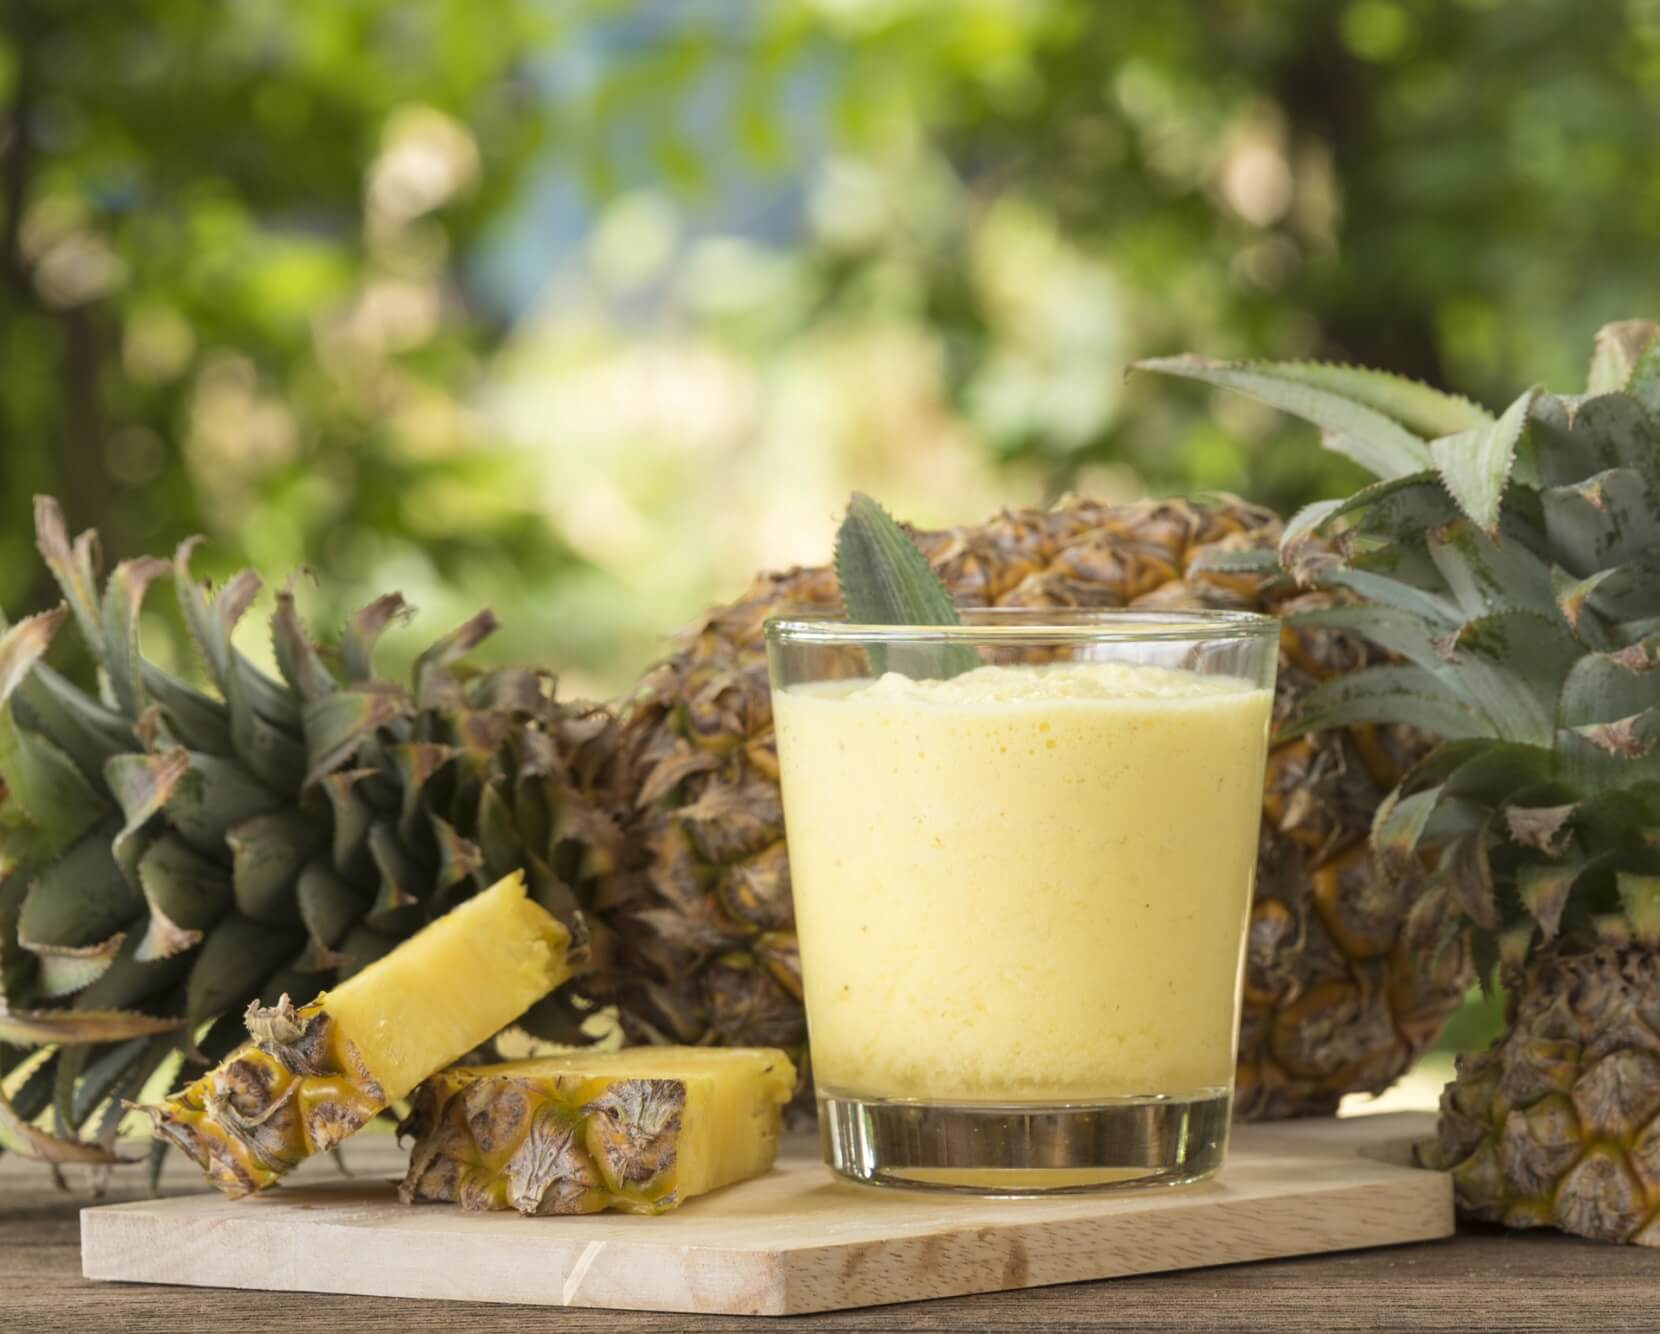 Pineapple Smoothie 101